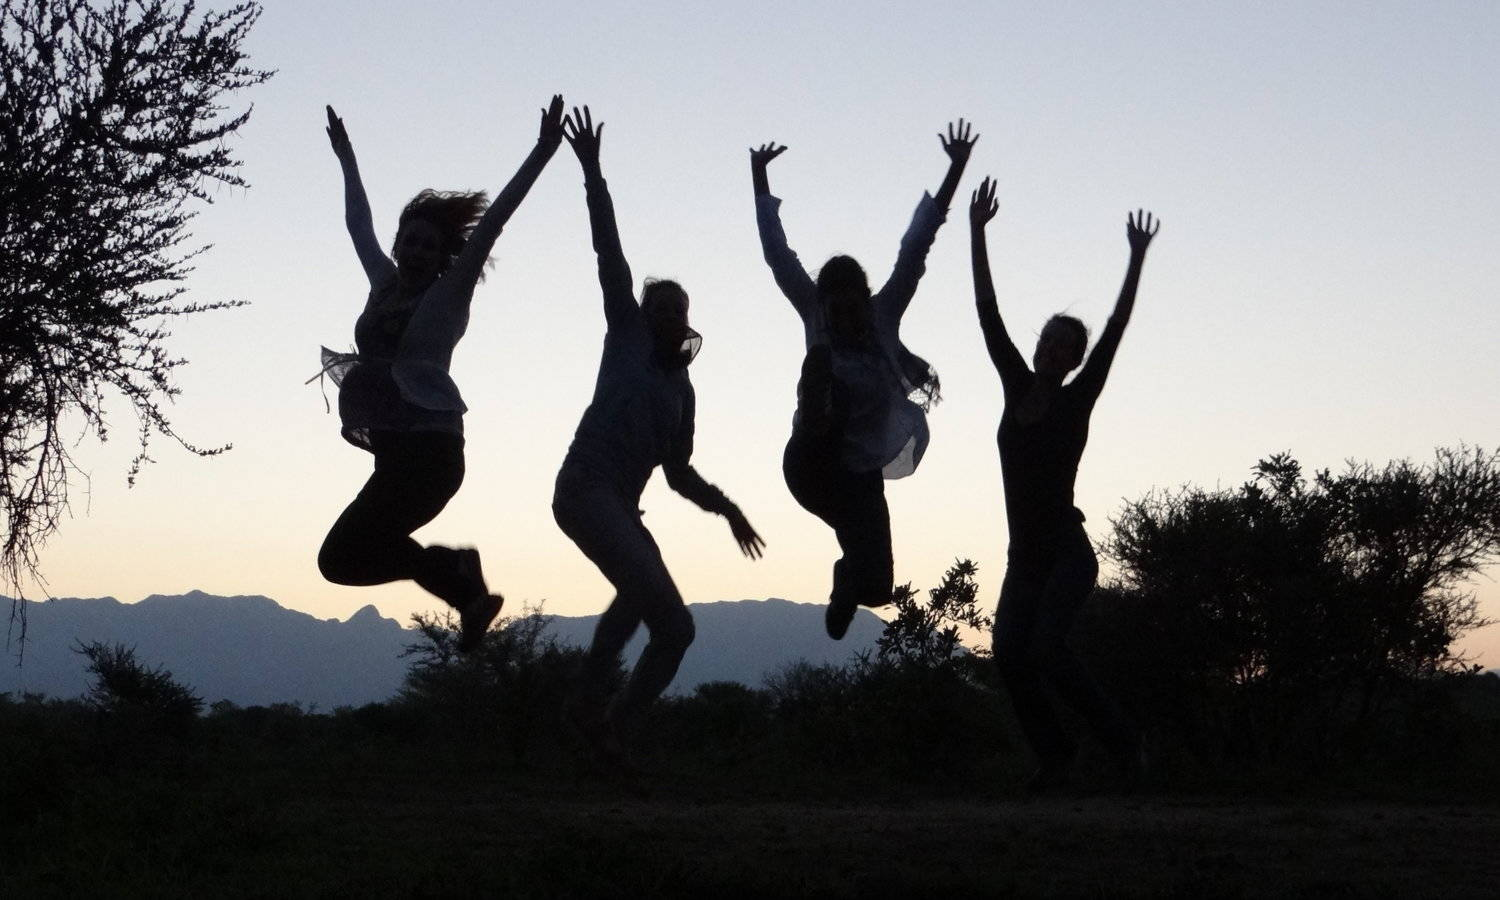 Silhoutes jumping high, communicate with joy